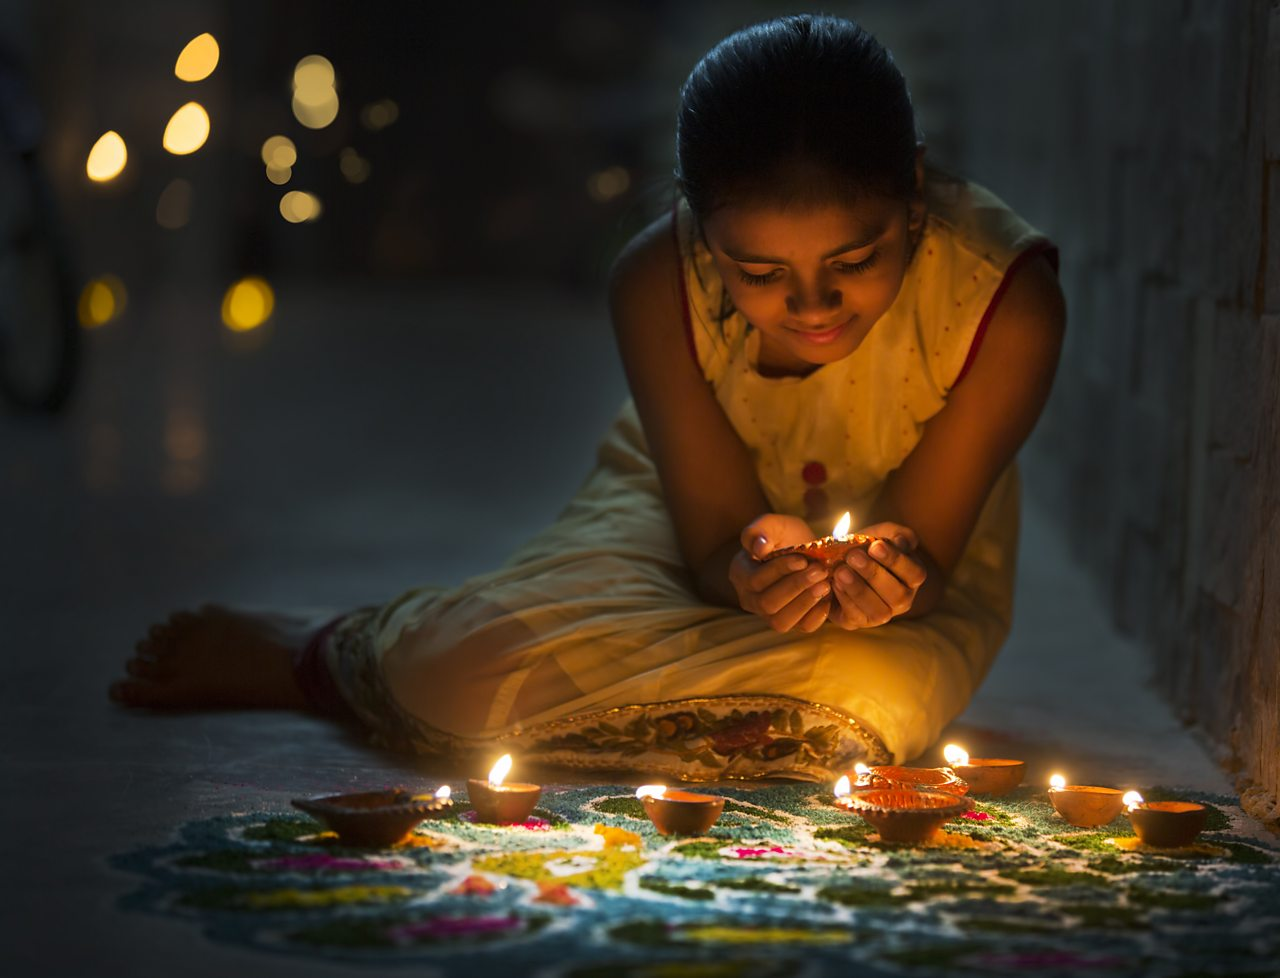 Young girl celebrating Diwali.  She is surrounded by candles and is holding one in cupped hands.